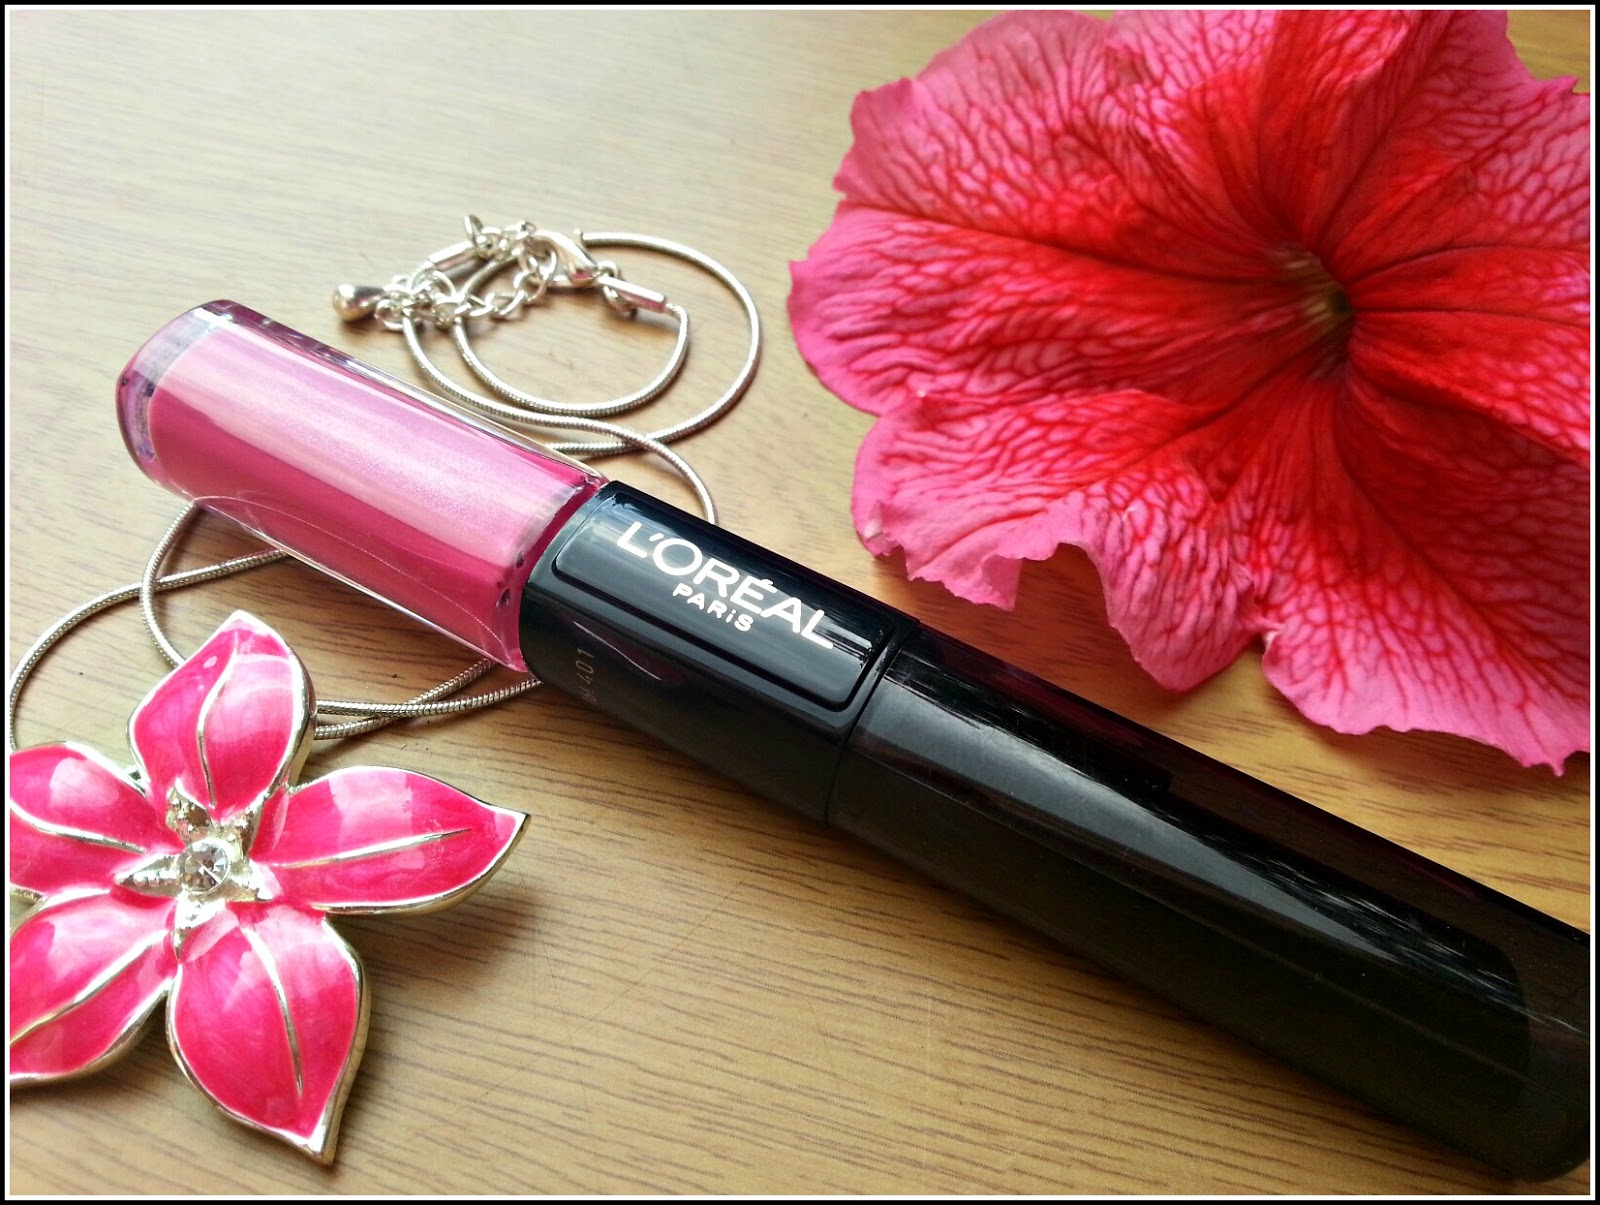 L'Oréal_Paris_Infallible_24H_Lip_Colour_Flawless_Fuchsia